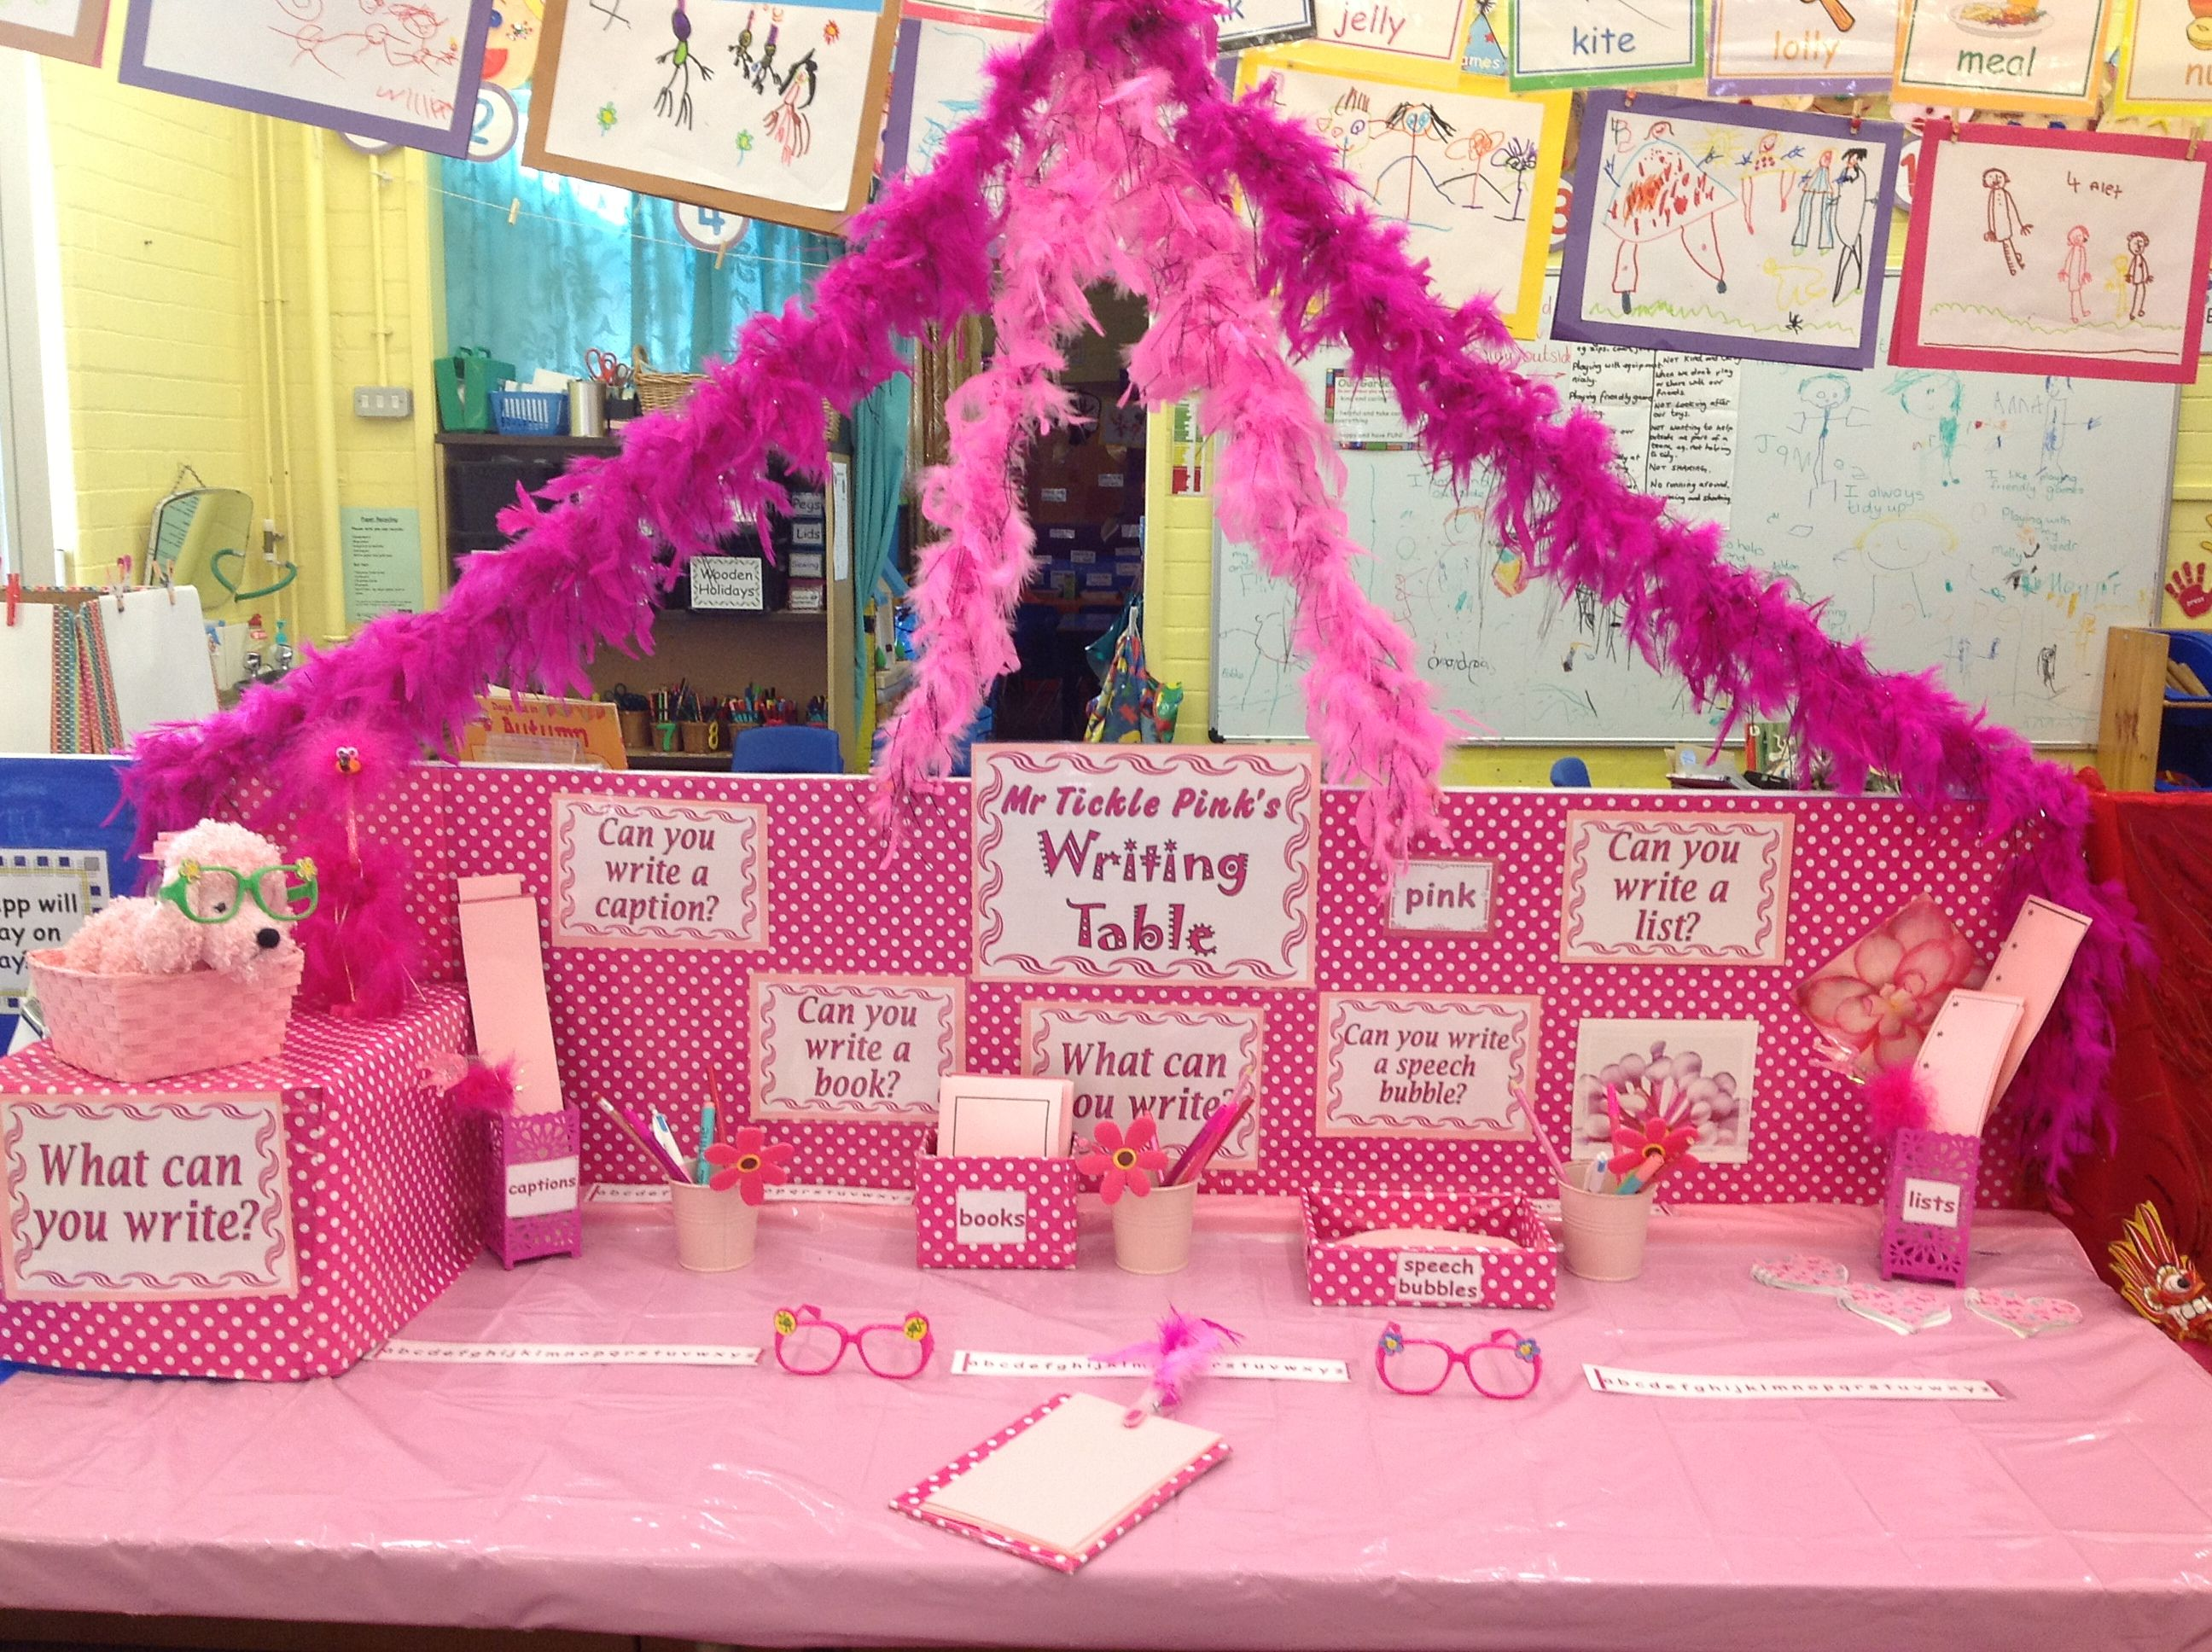 Mr Tickled Pink Has Set Up A Writing Table Over Half Term As Requested By The Children He S